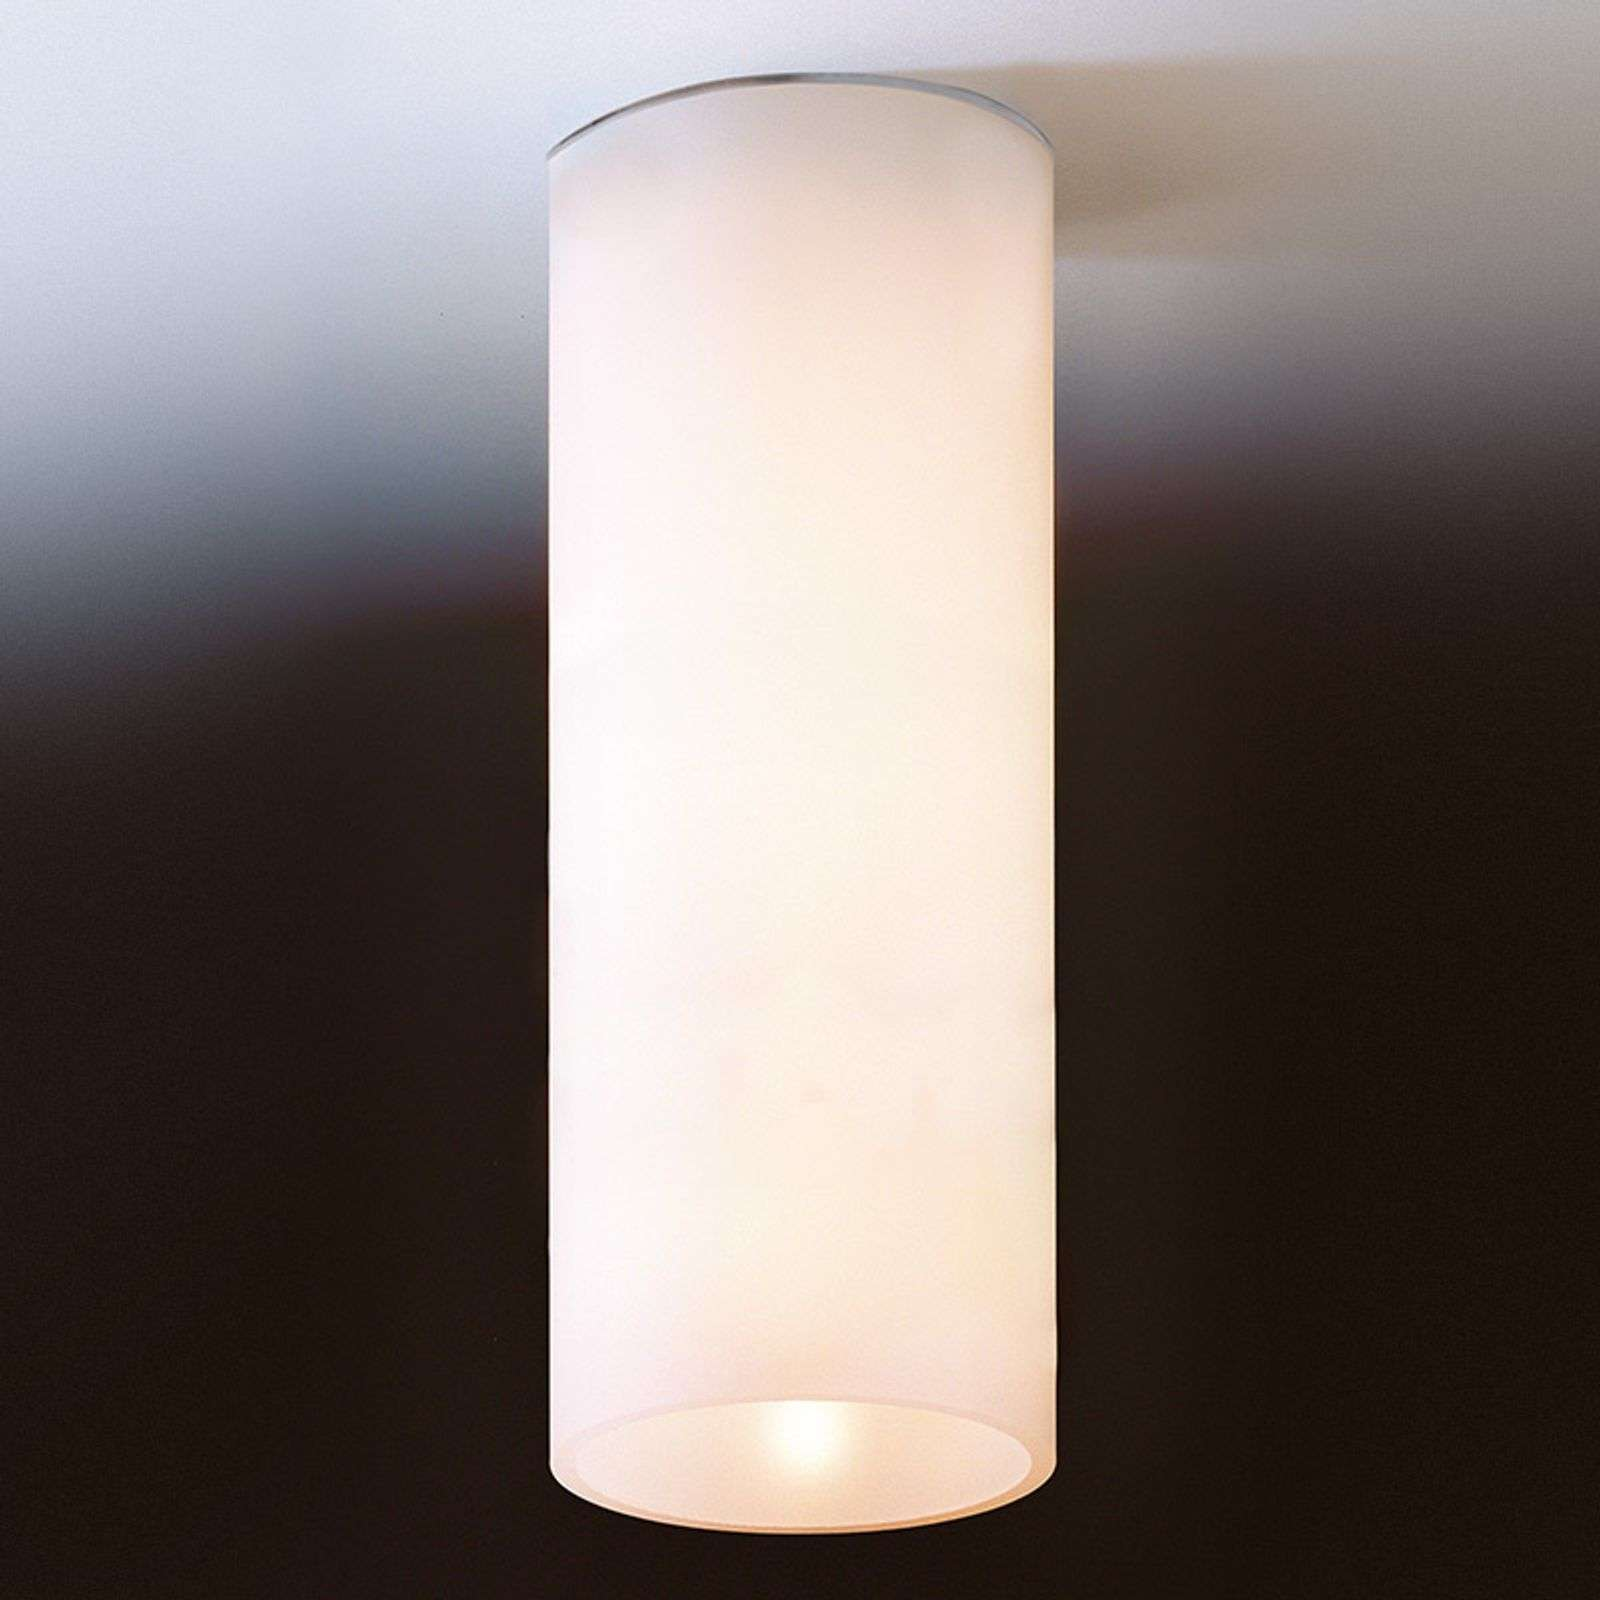 Wall lamps|Ceiling lights Simple ceiling light DELA made of white glass